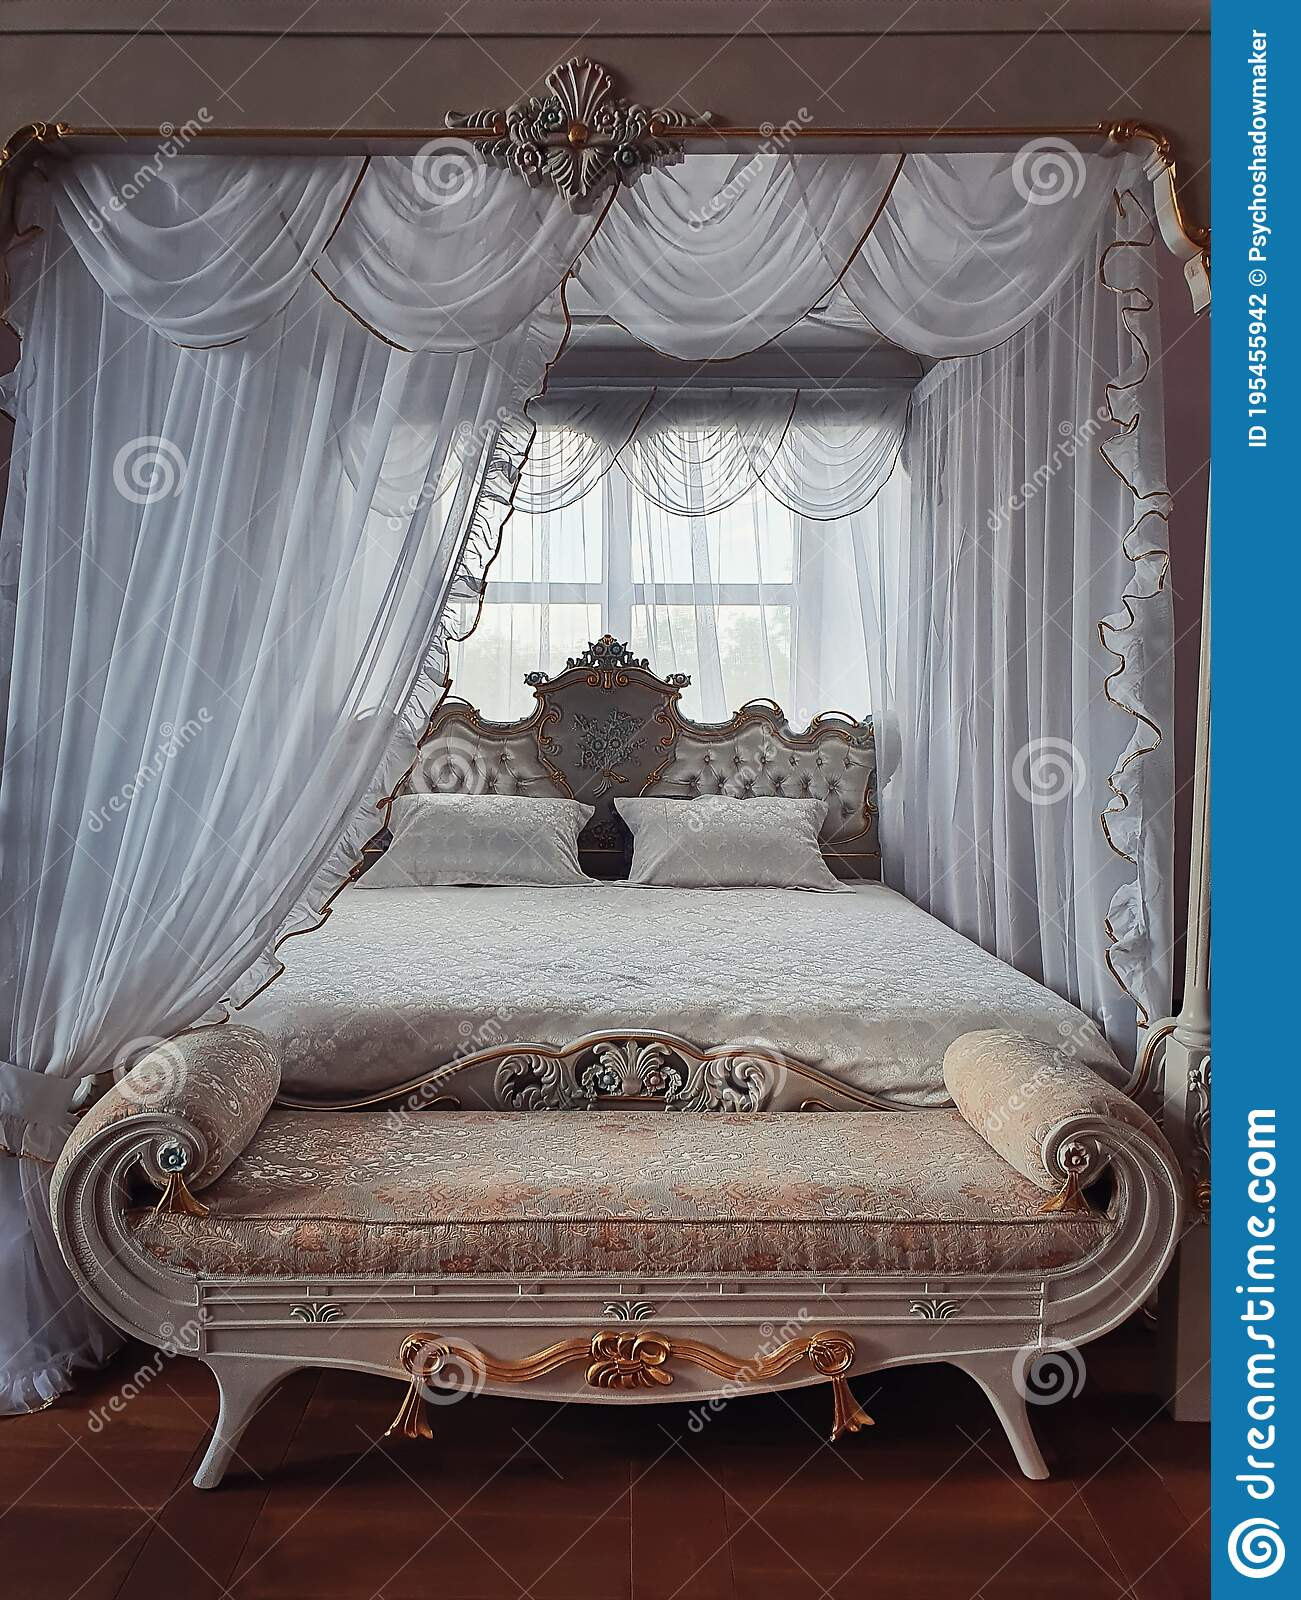 Ancient Bedroom Furniture Style Medieval King Bed Near The Window White Curtains Canopy And Gold Details Close Up Background Stock Photo Image Of European Landmark 195455942